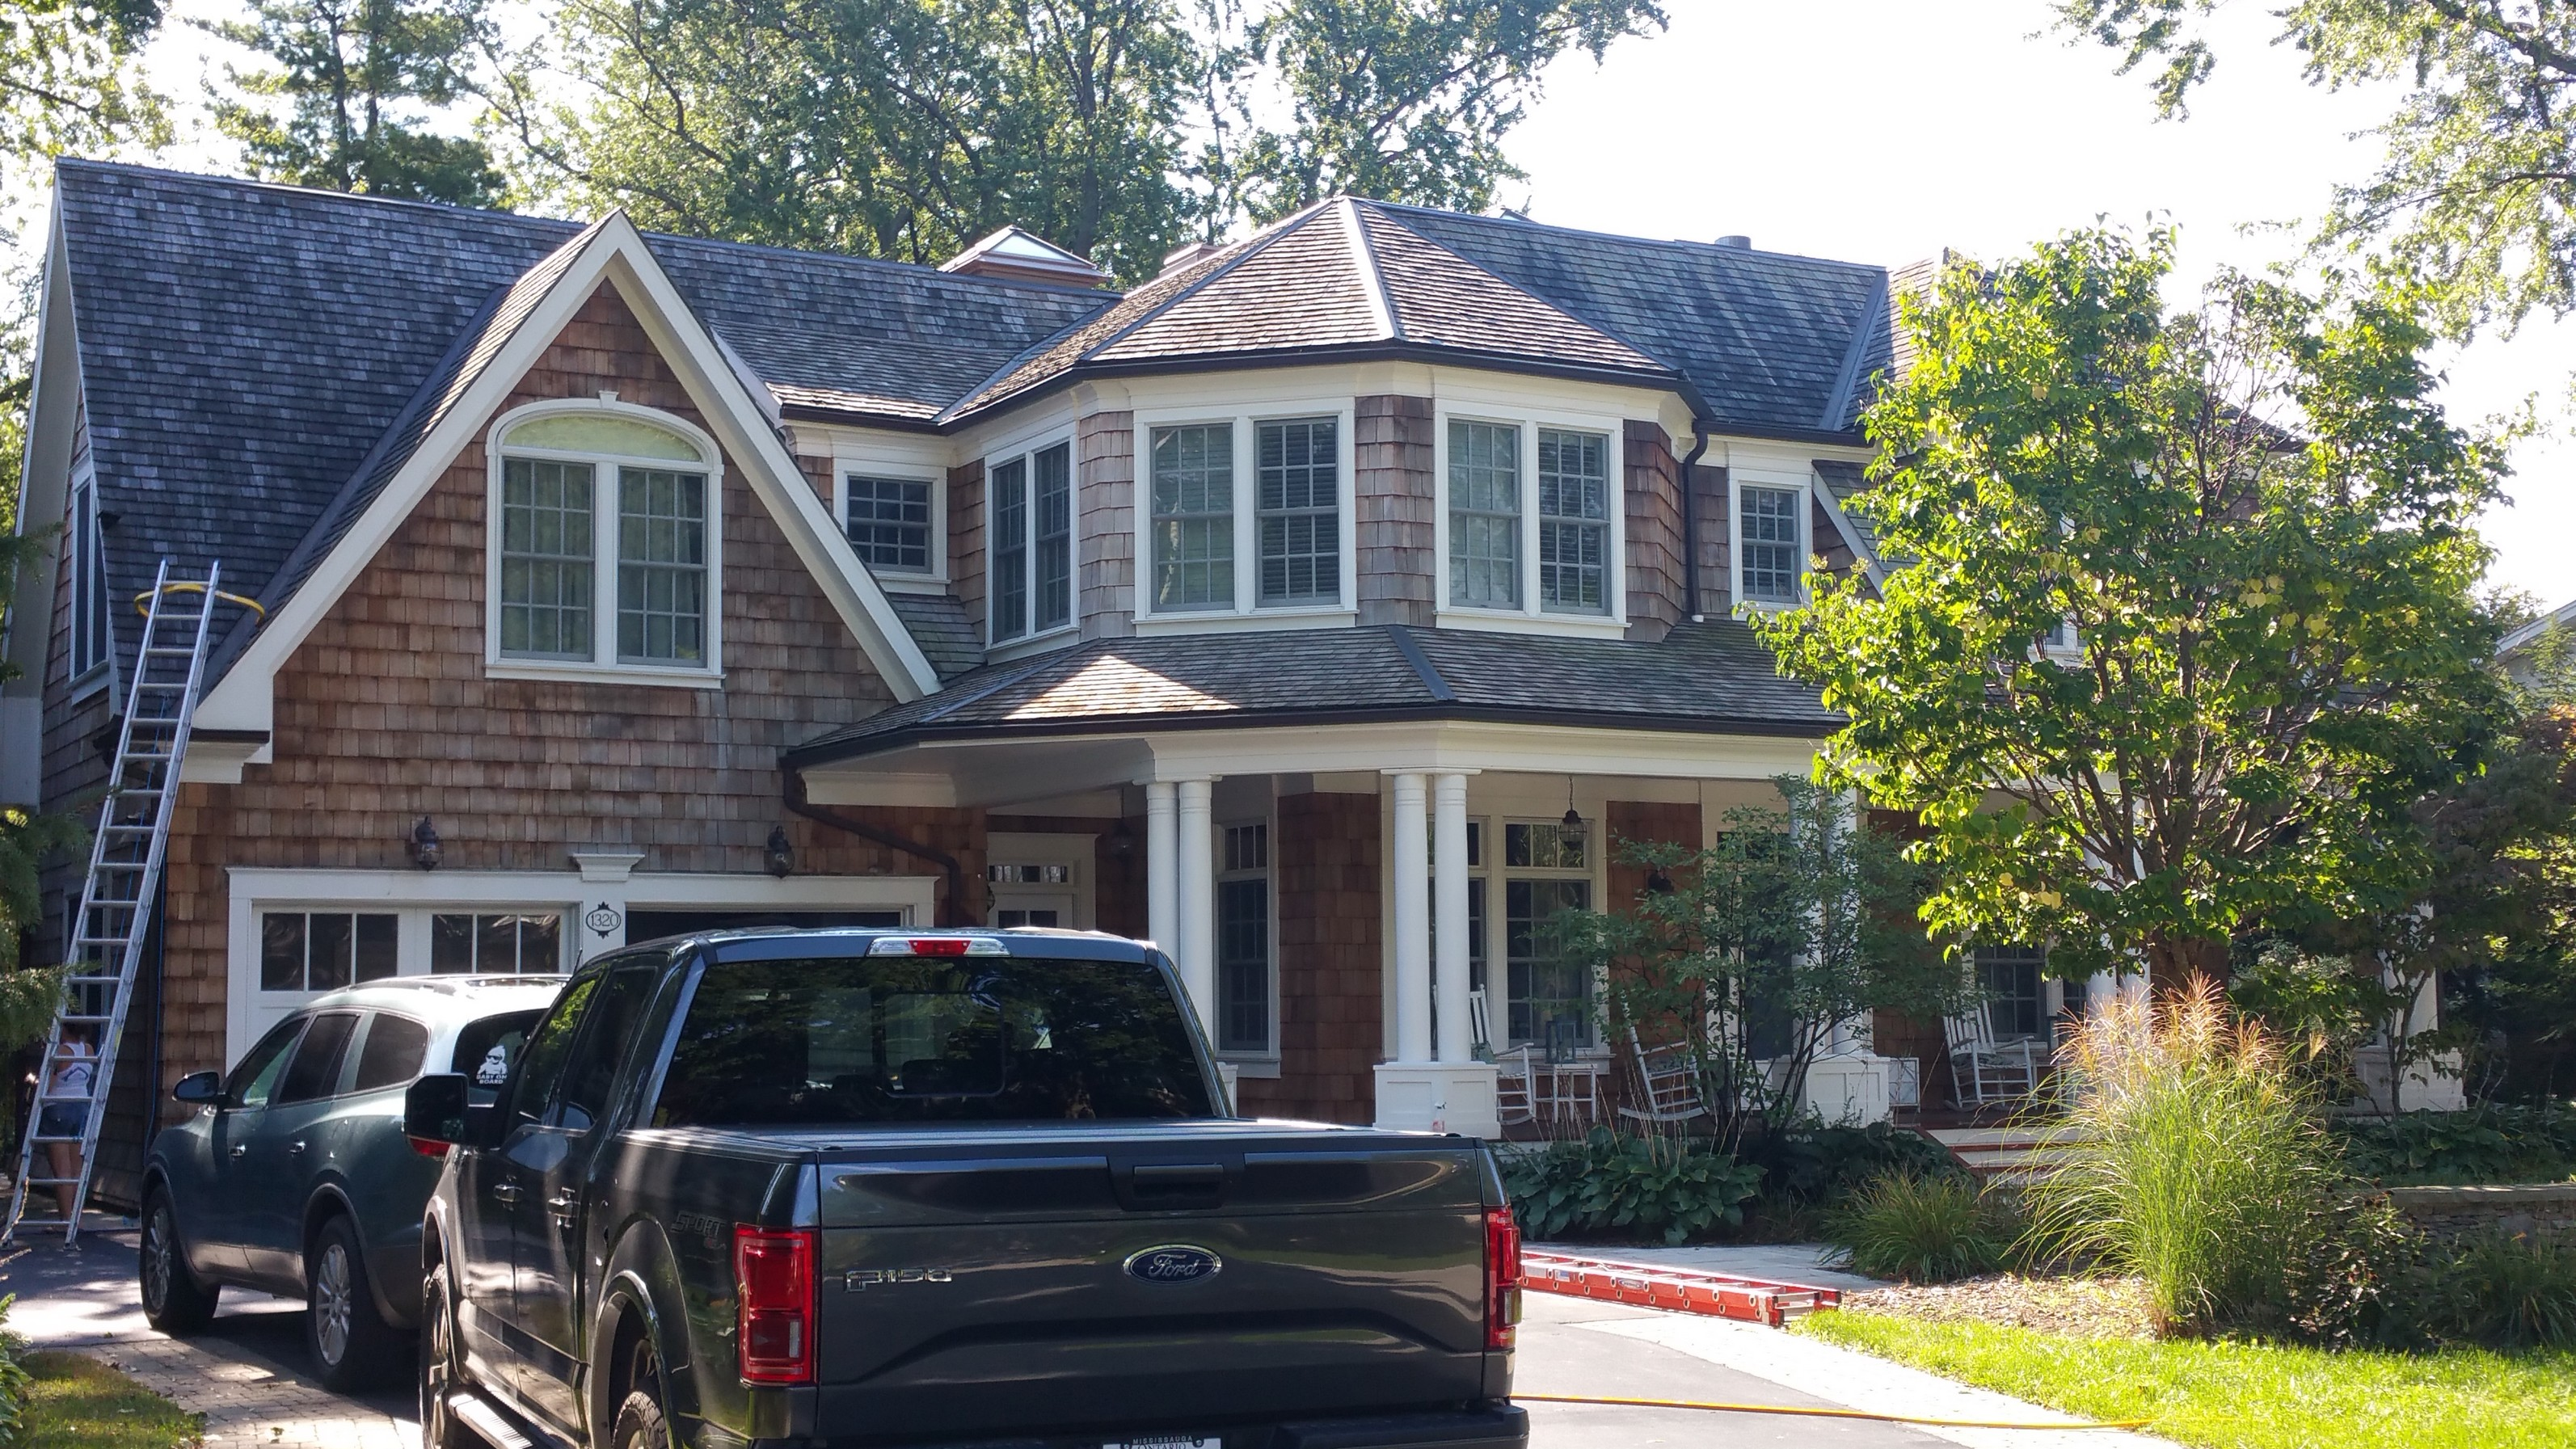 Barrie Roof Cleaning